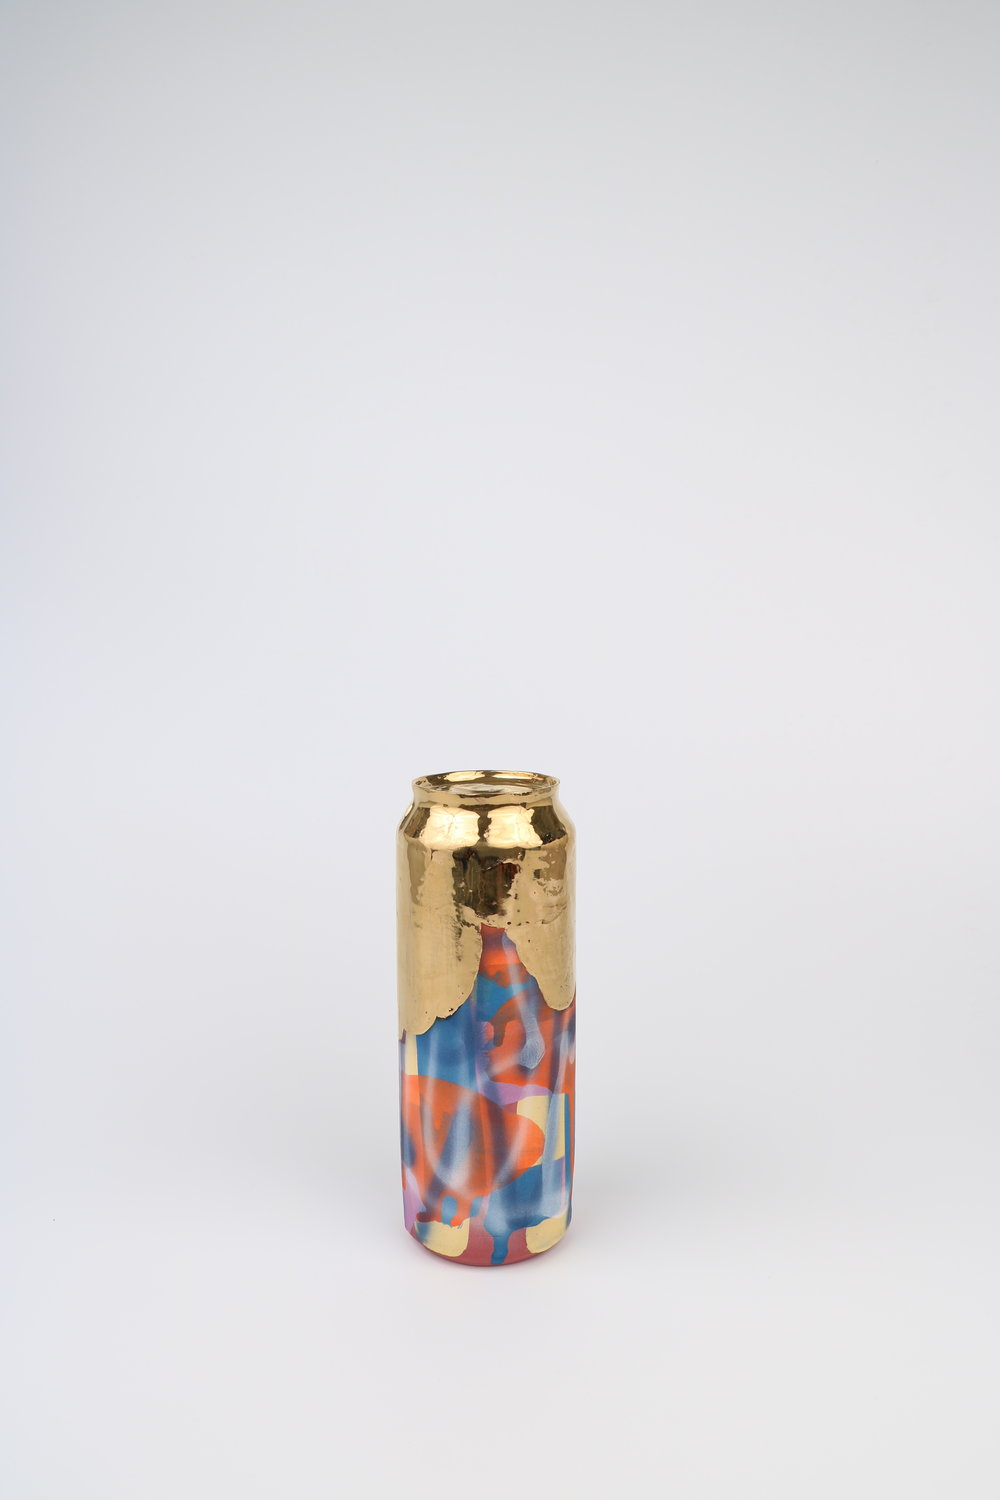 Cindy Lisica Gallery - Jeff Schwarz - _Beer Can_13_ - ceramic and 24kt gold lustre glaze - 8 x 3 x 3 inches - 2017 - $400.JPG